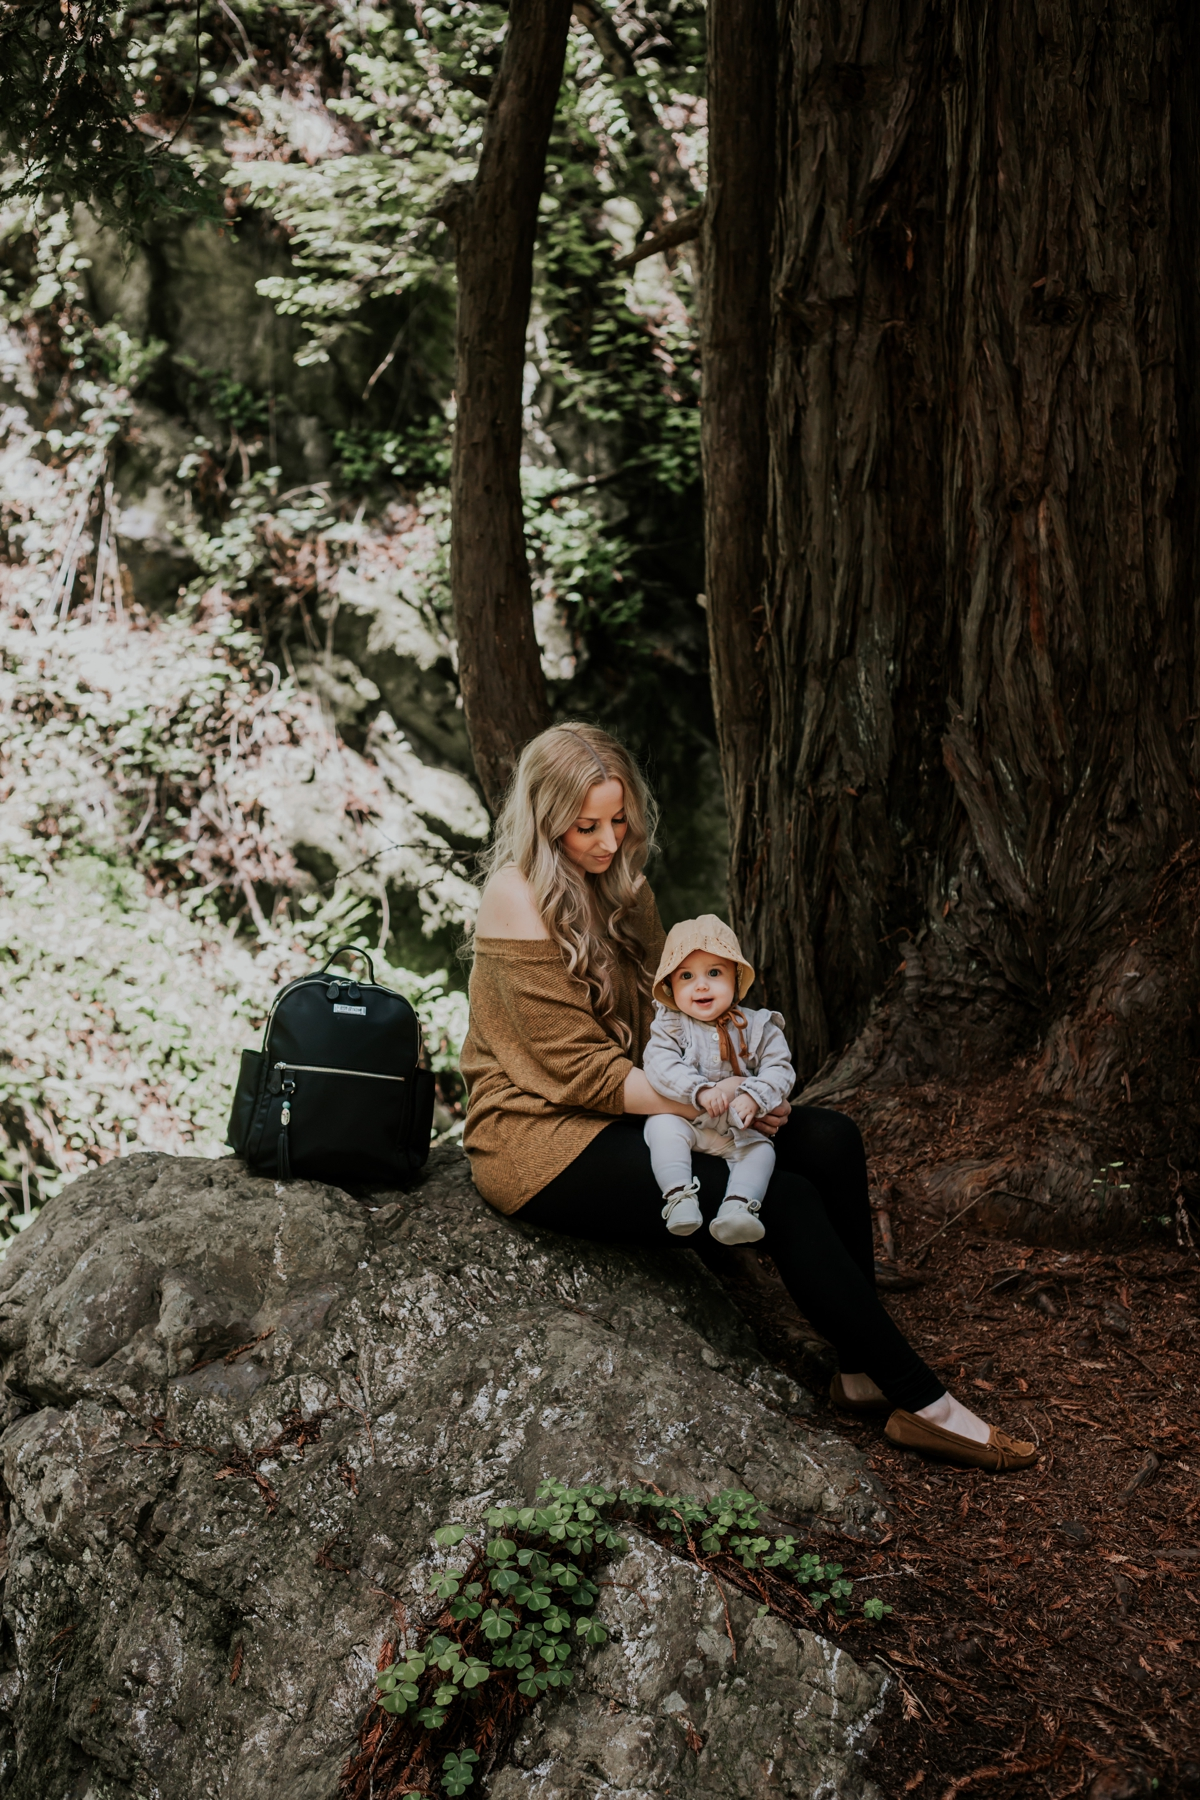 Kandis_Marino_Photography_Lifestyle_Lily_Jade_Diaper_Bag_Influencer_Abassador_Baby_Mom_Blogger_Mommy_Blog_Newborn_Pregnancy_0103.jpg